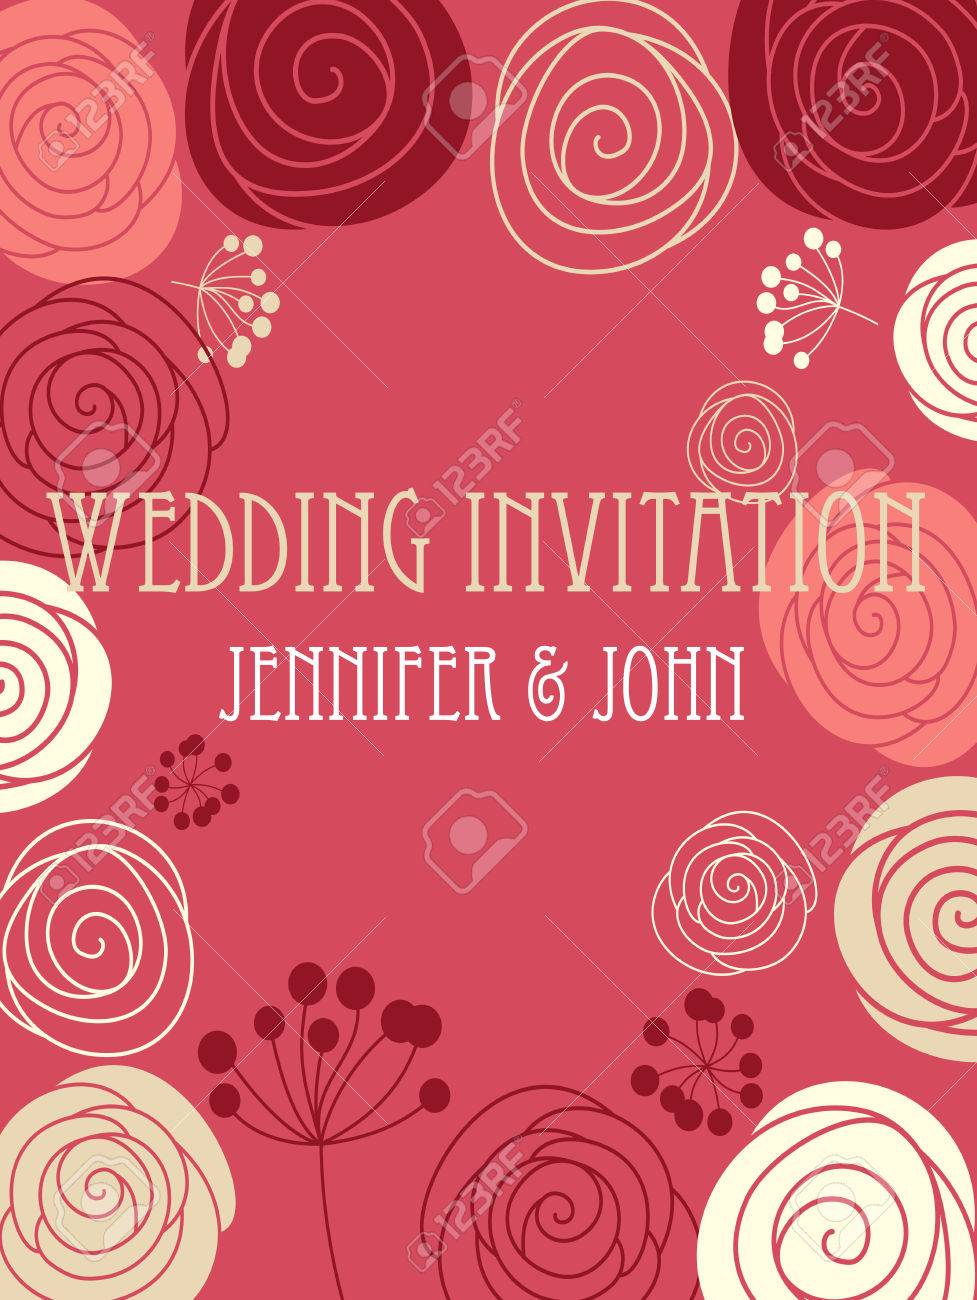 Wedding Invitation Card Template With A Stylized Floral Red ...